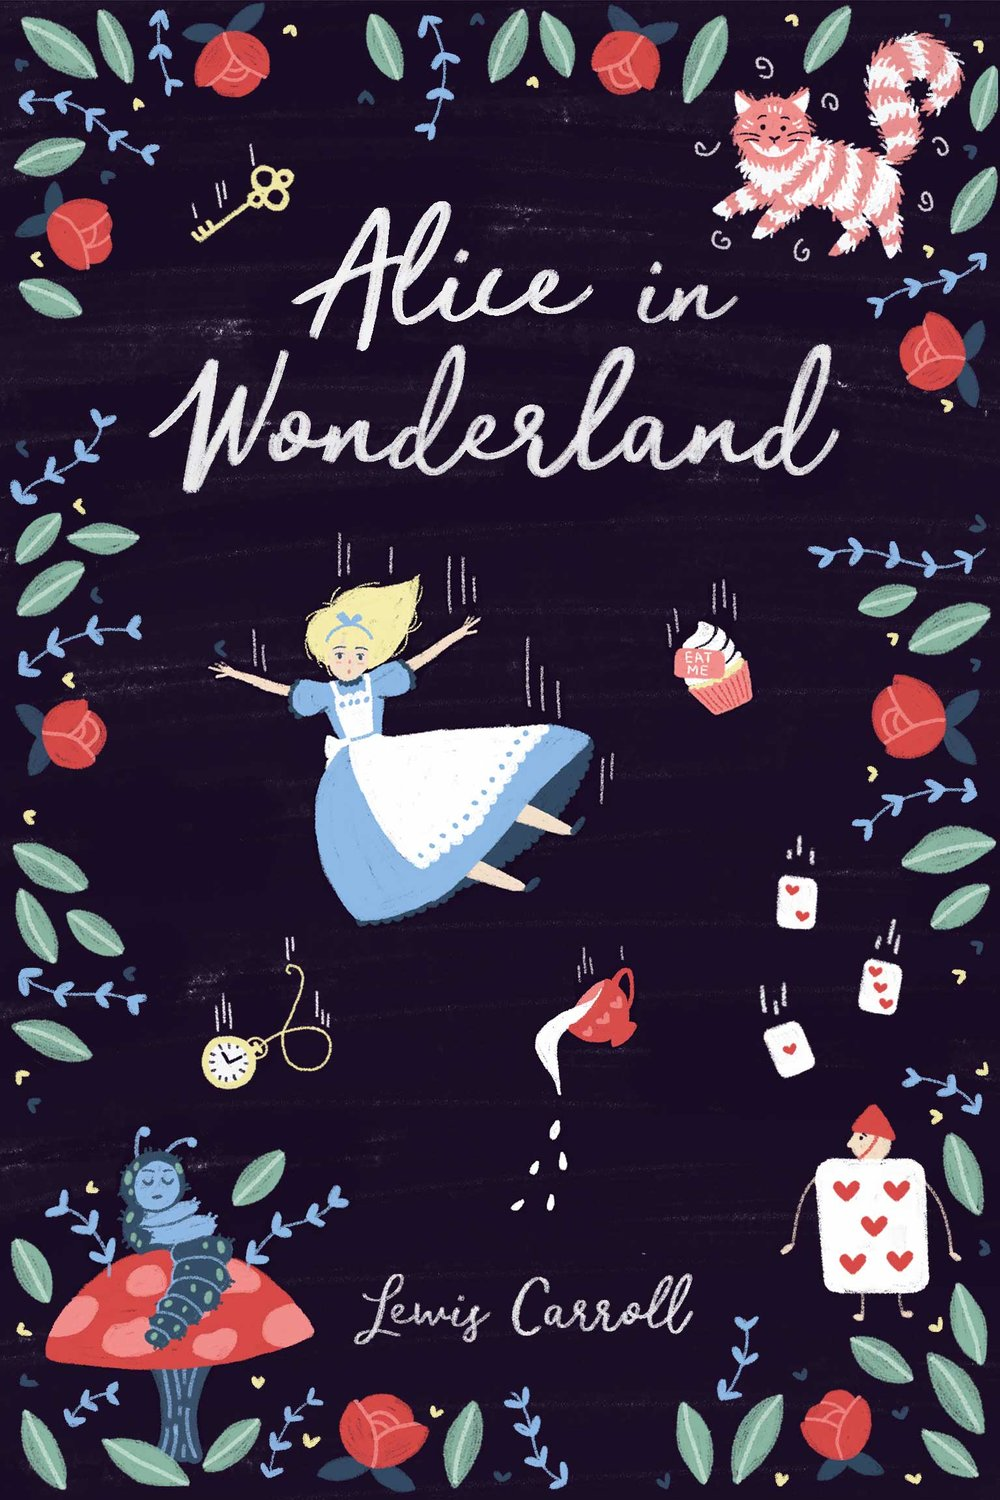 Illustrated Alice in Wonderland book cover, Alice falling into Wonderland with the Chester Cat.